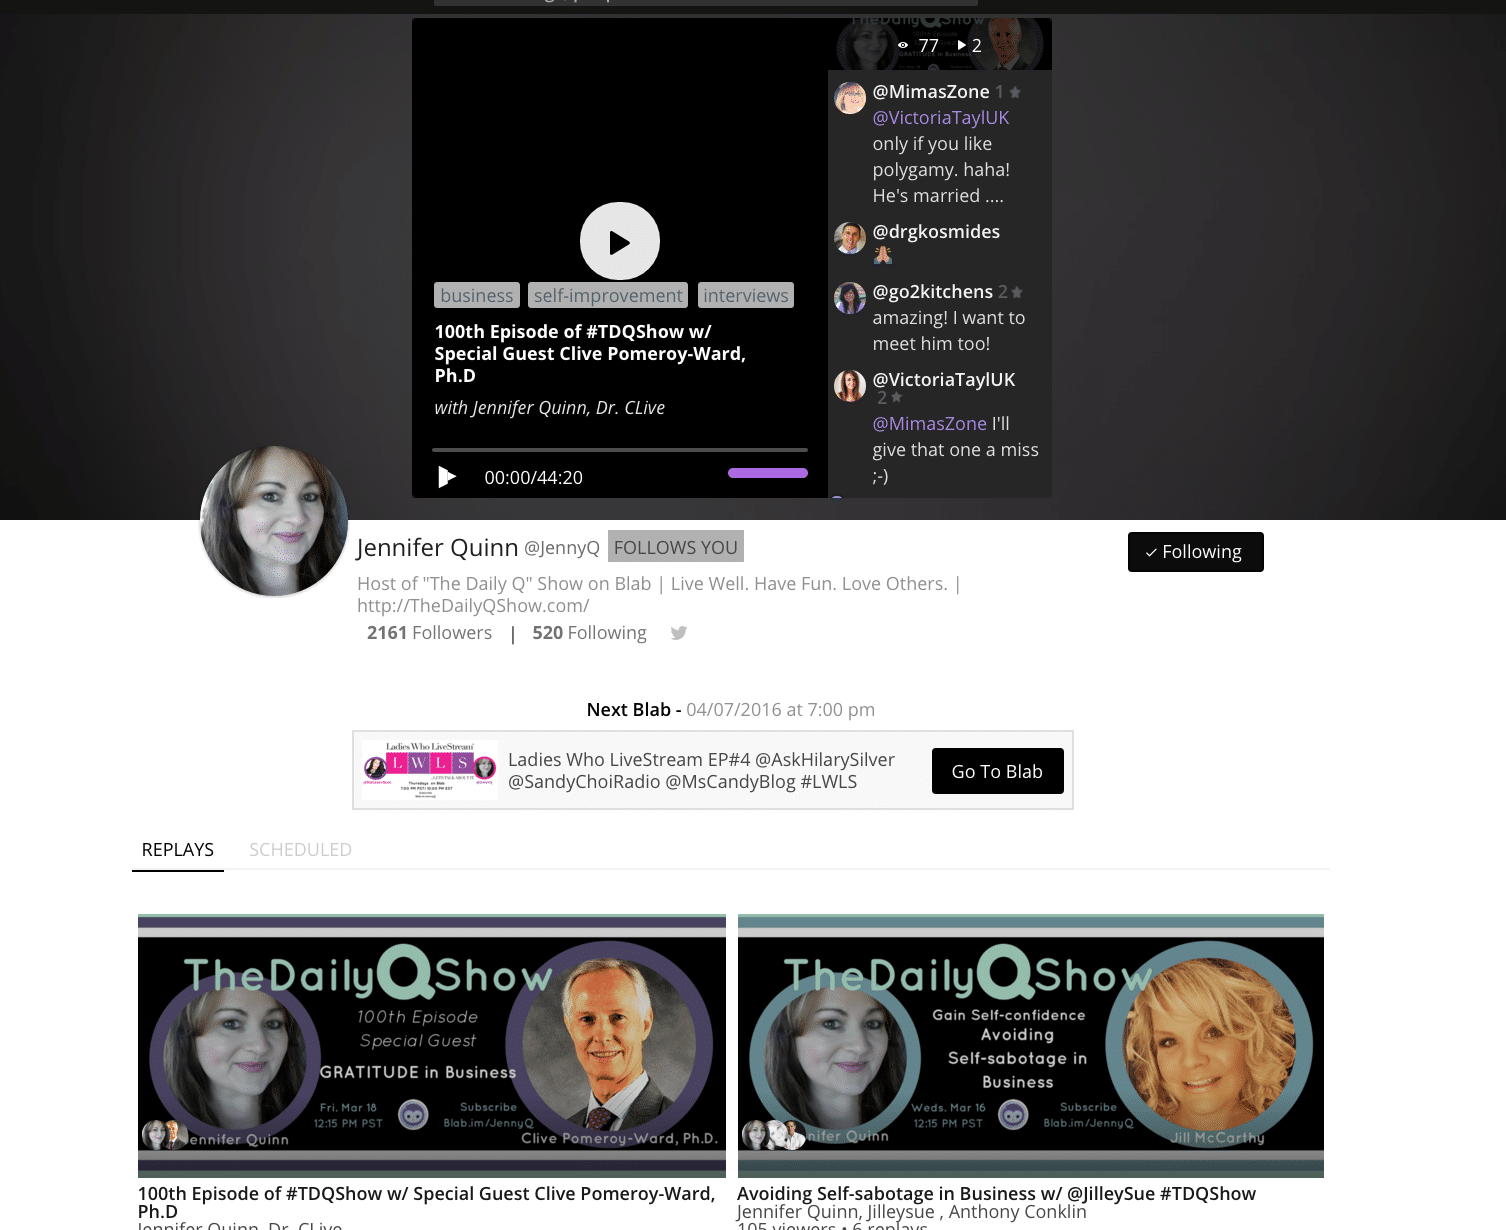 Be sure to check out Jenny Q on Blab!